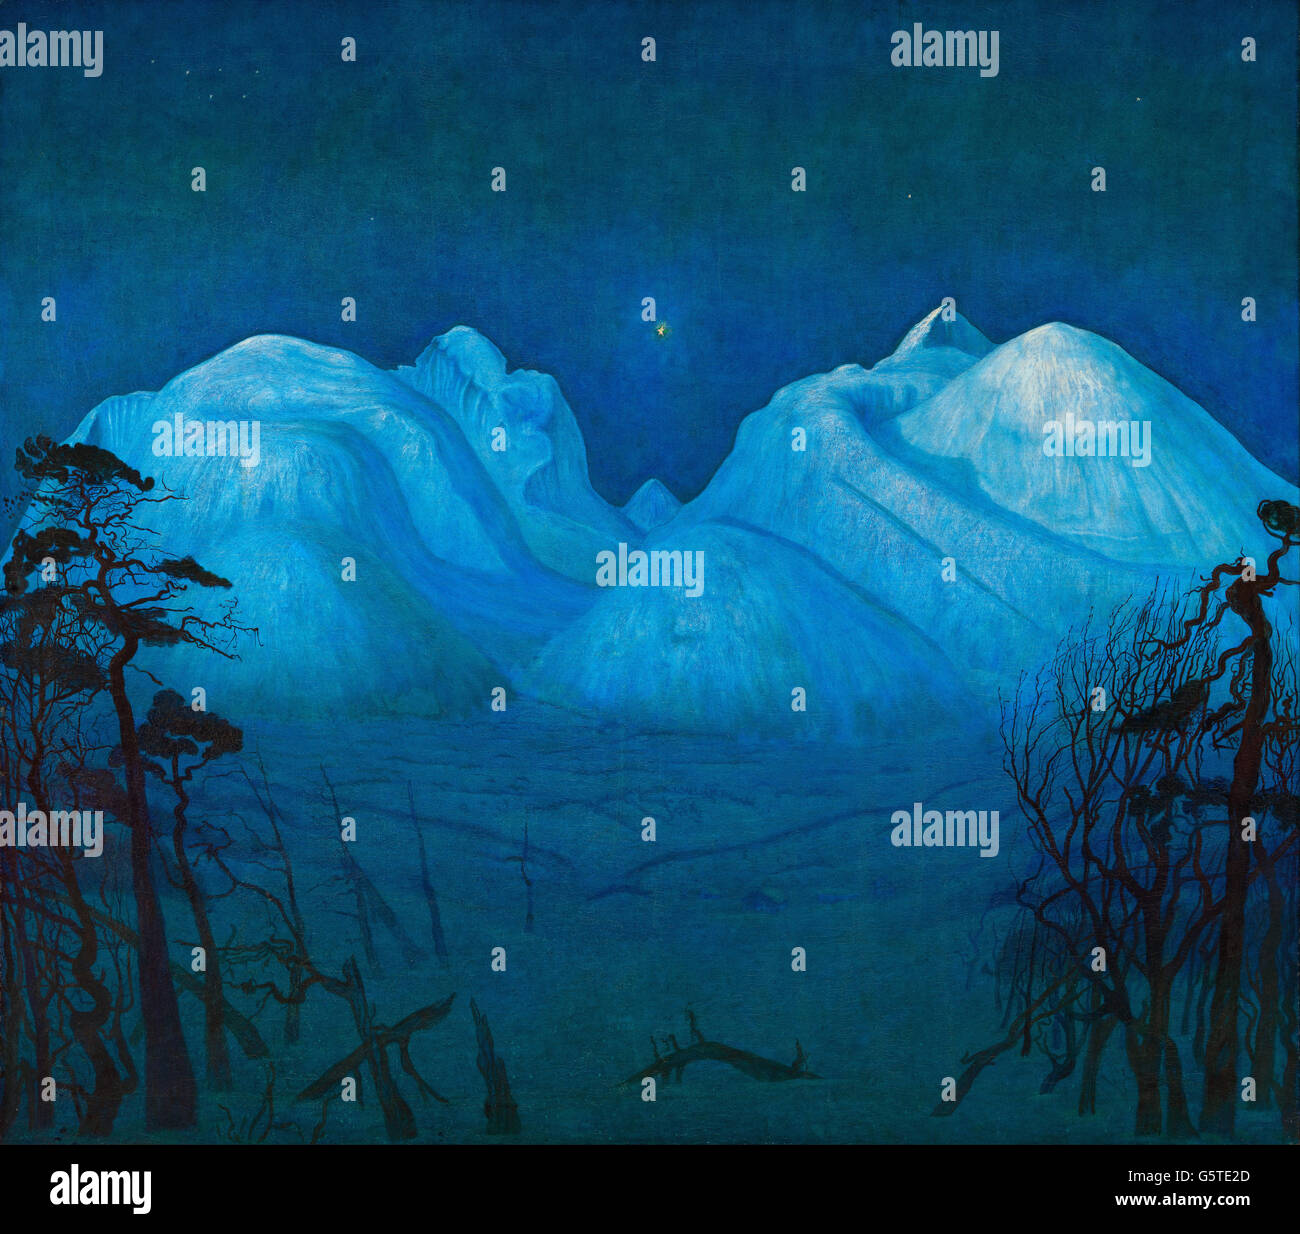 Harald Sohlberg - Winter Night in the Mountains - Stock Image